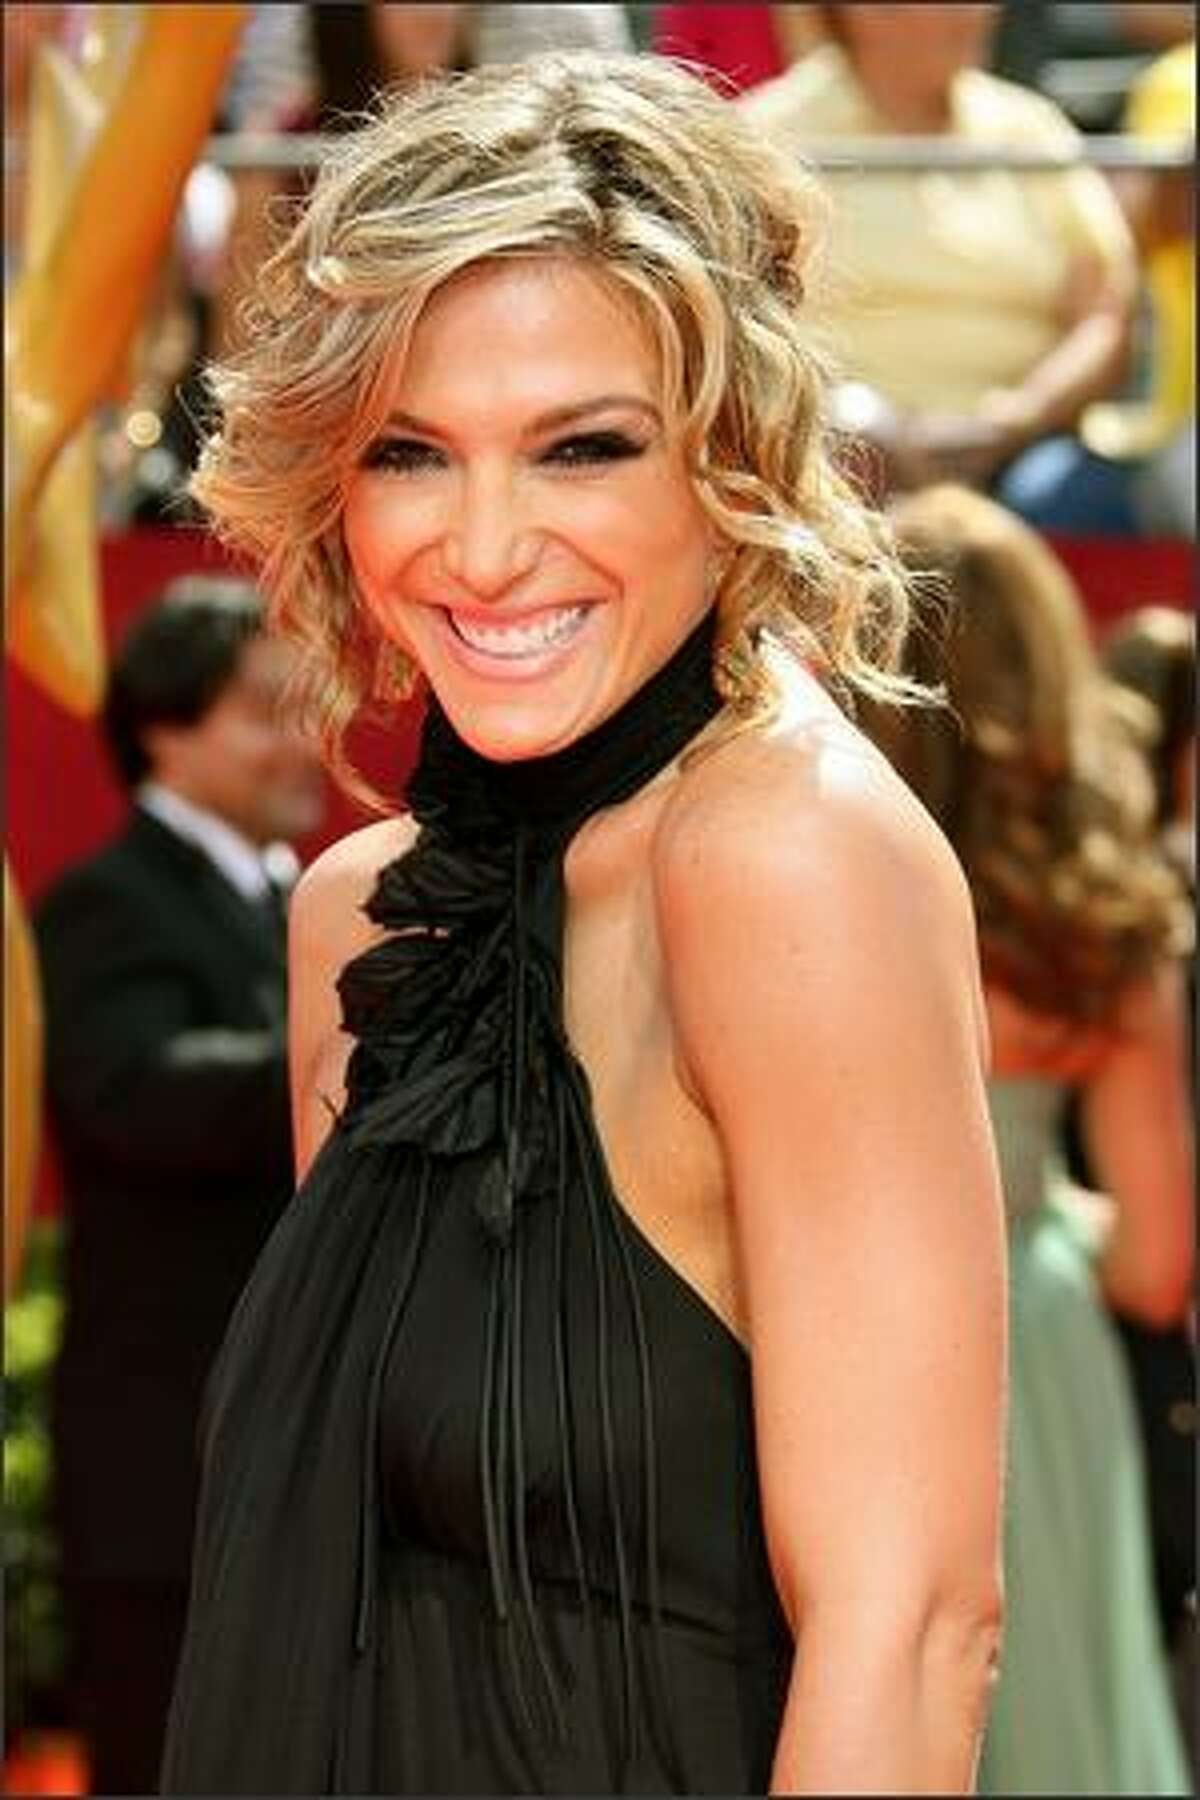 TV Personality Debbie Matenopoulos arrives at the 60th Primetime Emmy Awards held at Nokia Theatre in Los Angeles, California.